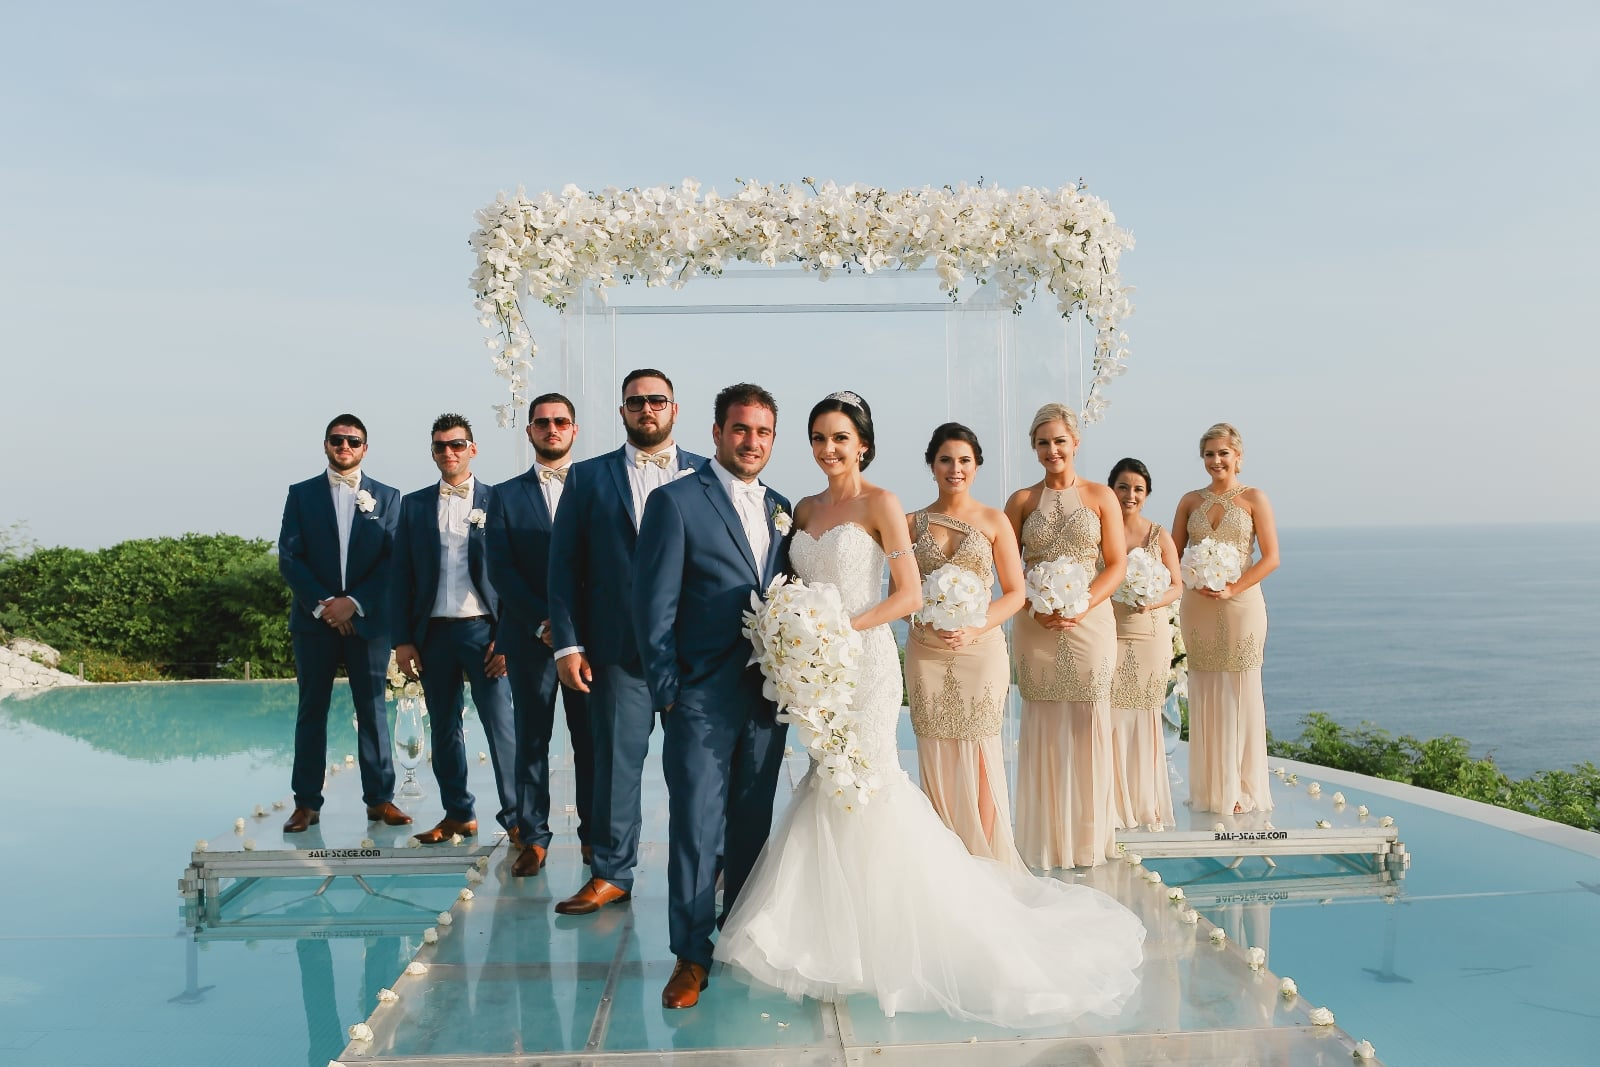 Casting Call: Your Dream Destination Wedding Featured on TV ...